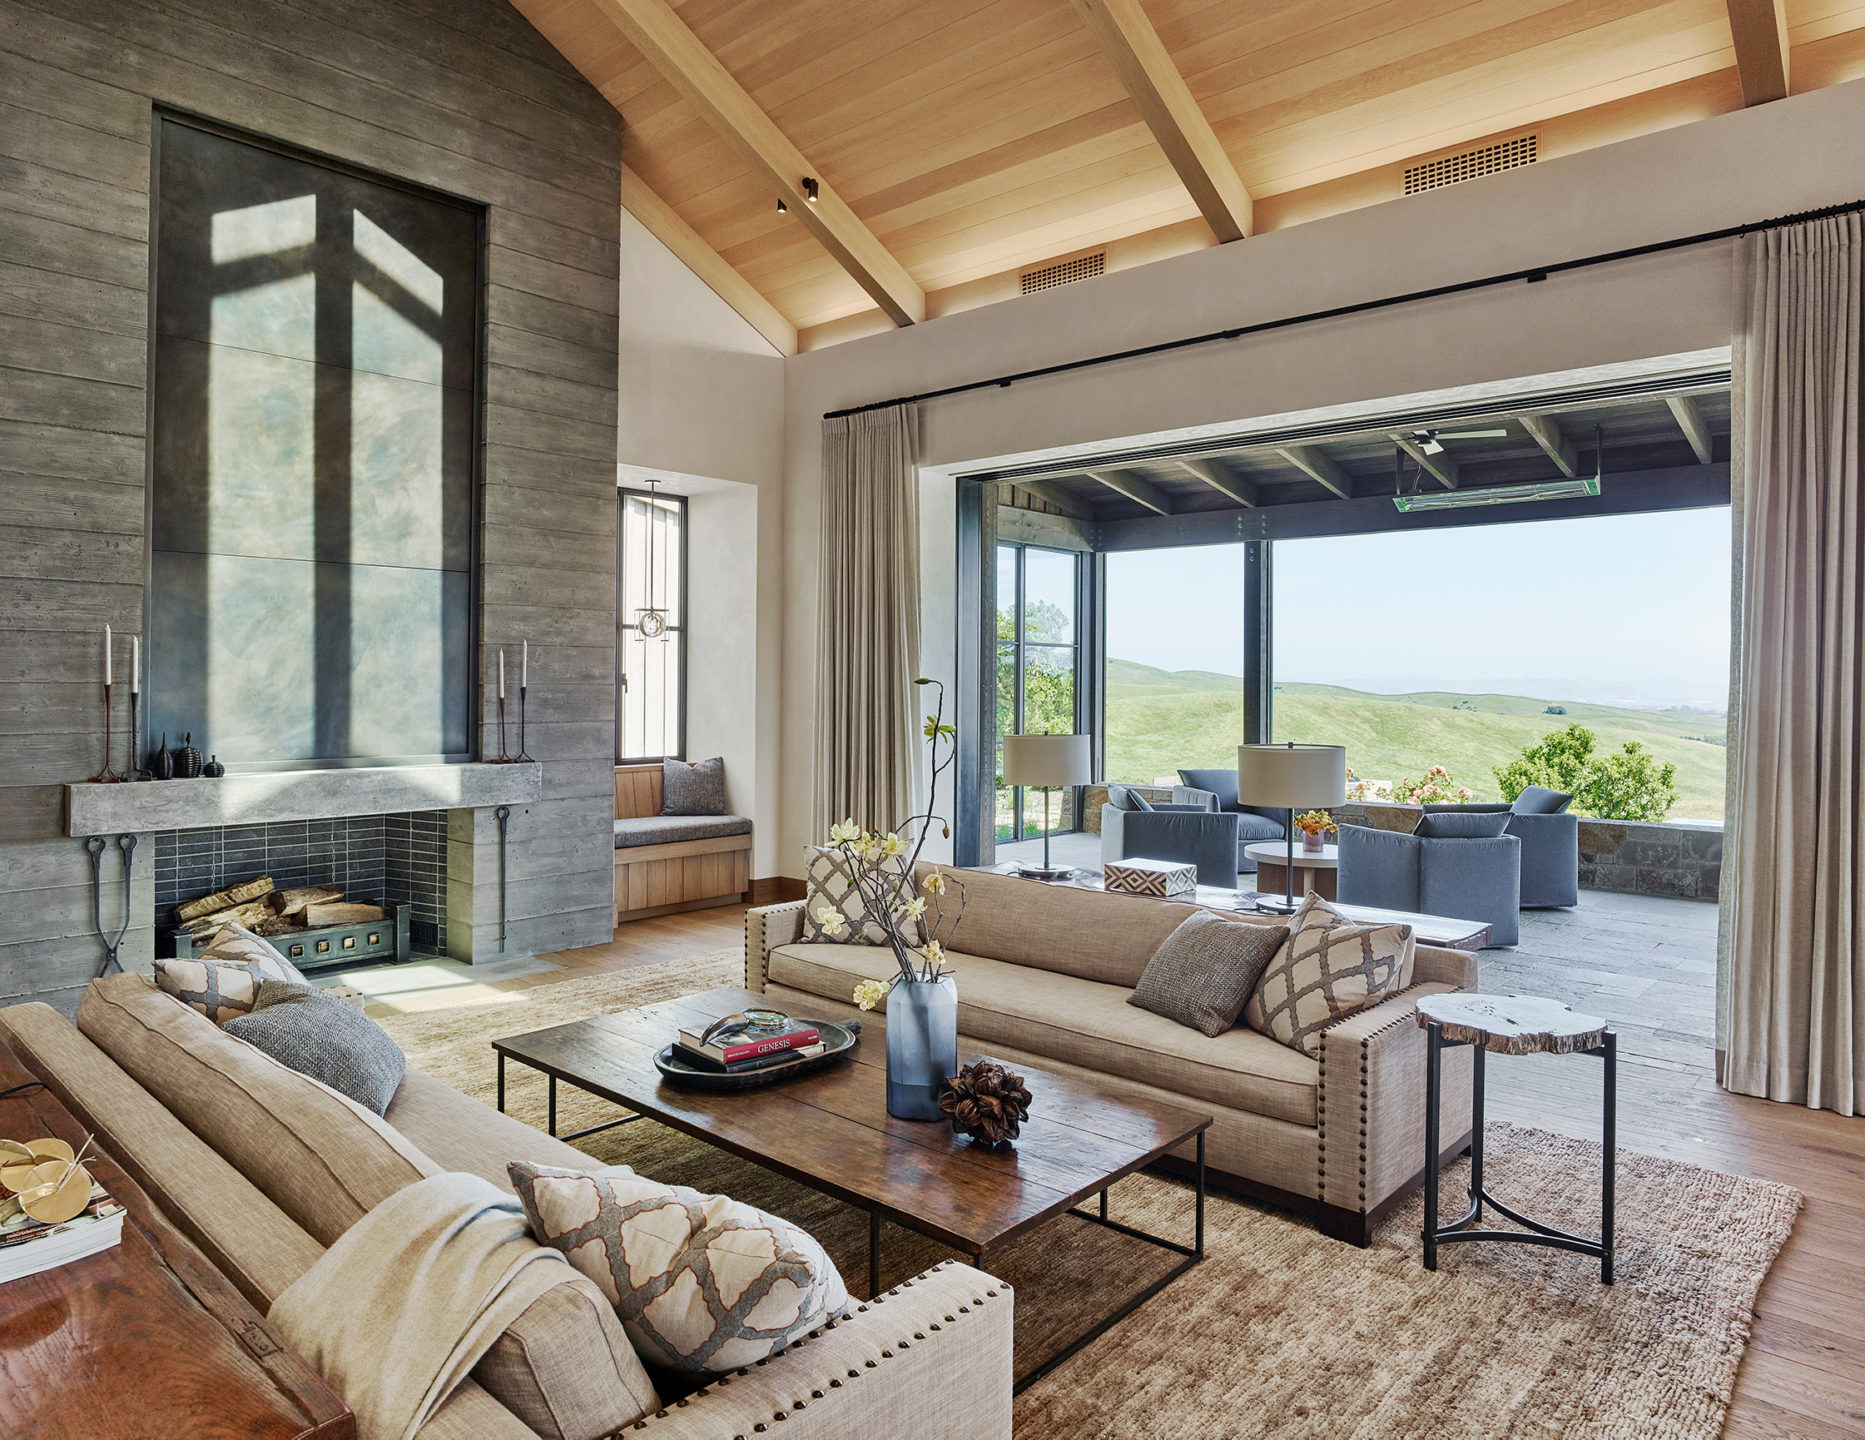 Jennifer_robins_interiors_projects_napa_valley_5_living_room_LR_fireplace